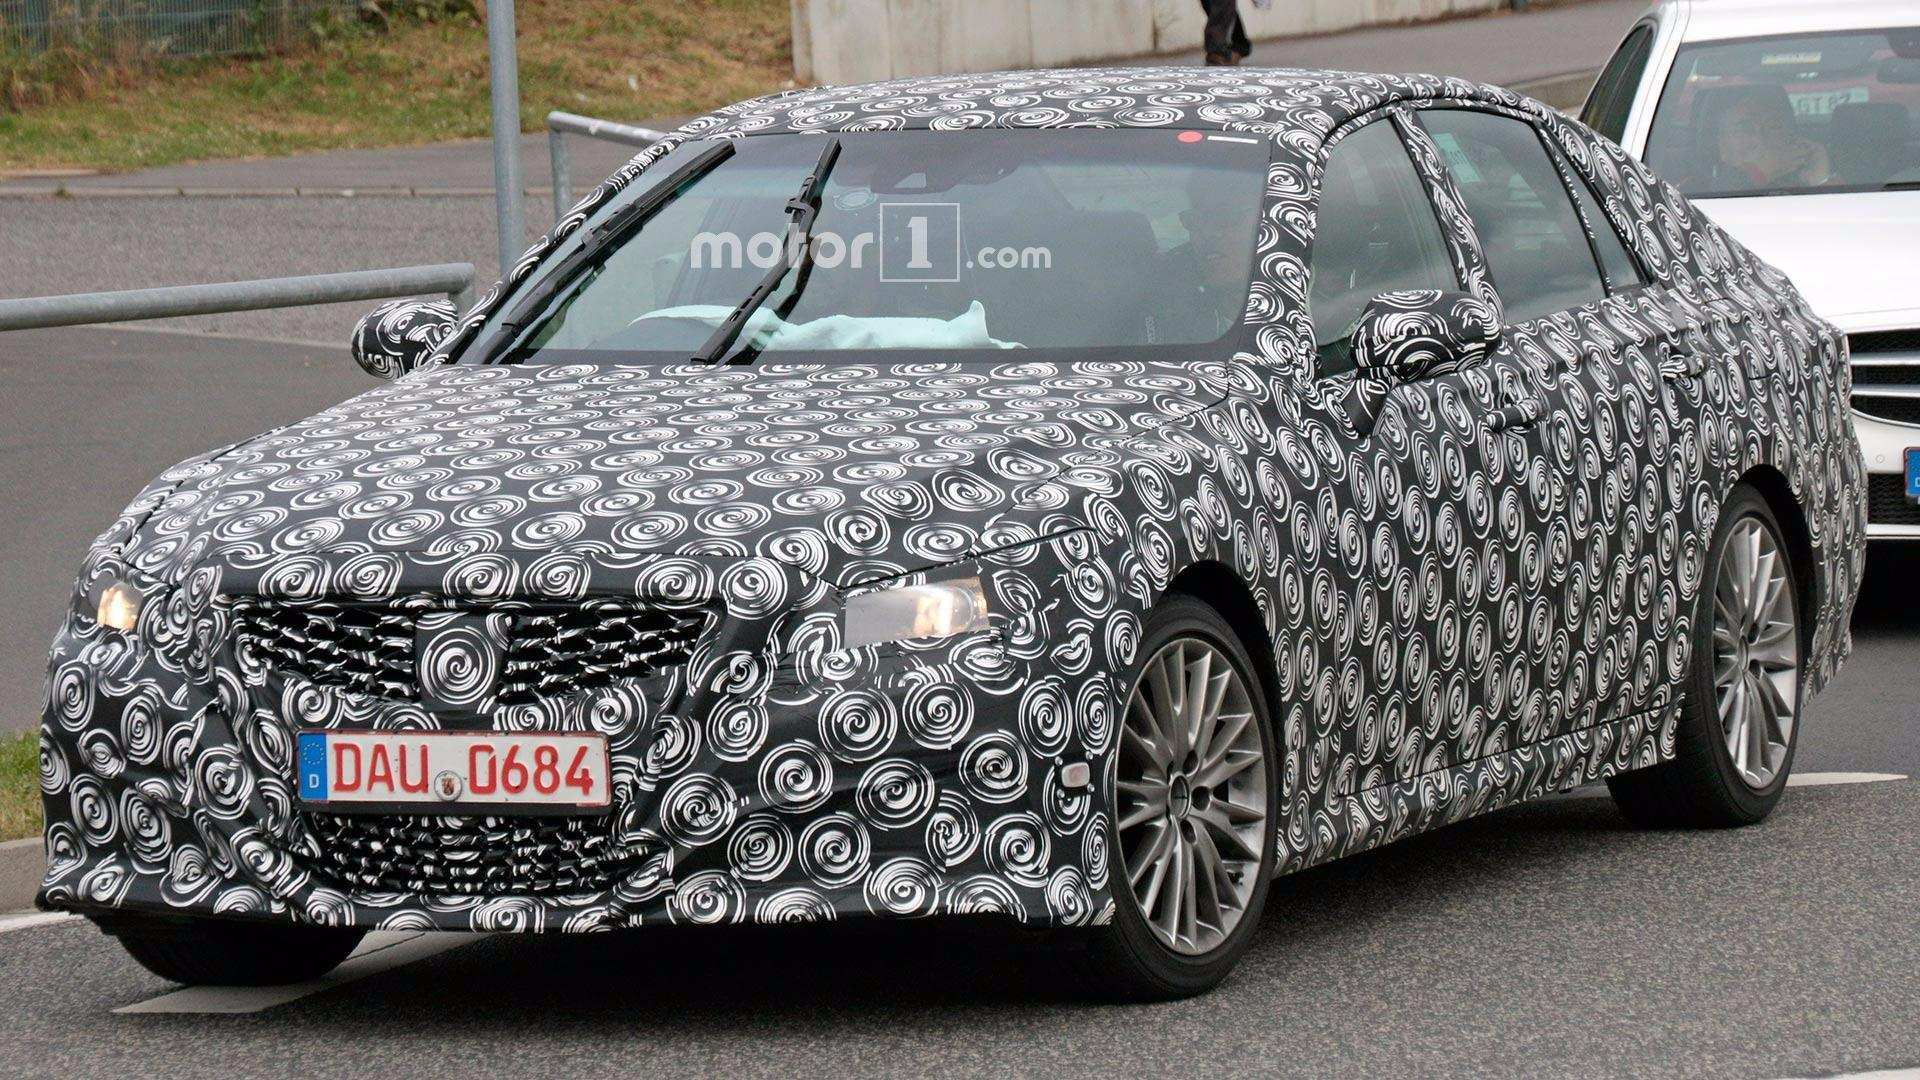 91 Gallery of Lexus Is 2020 Spy Shots New Concept with Lexus Is 2020 Spy Shots